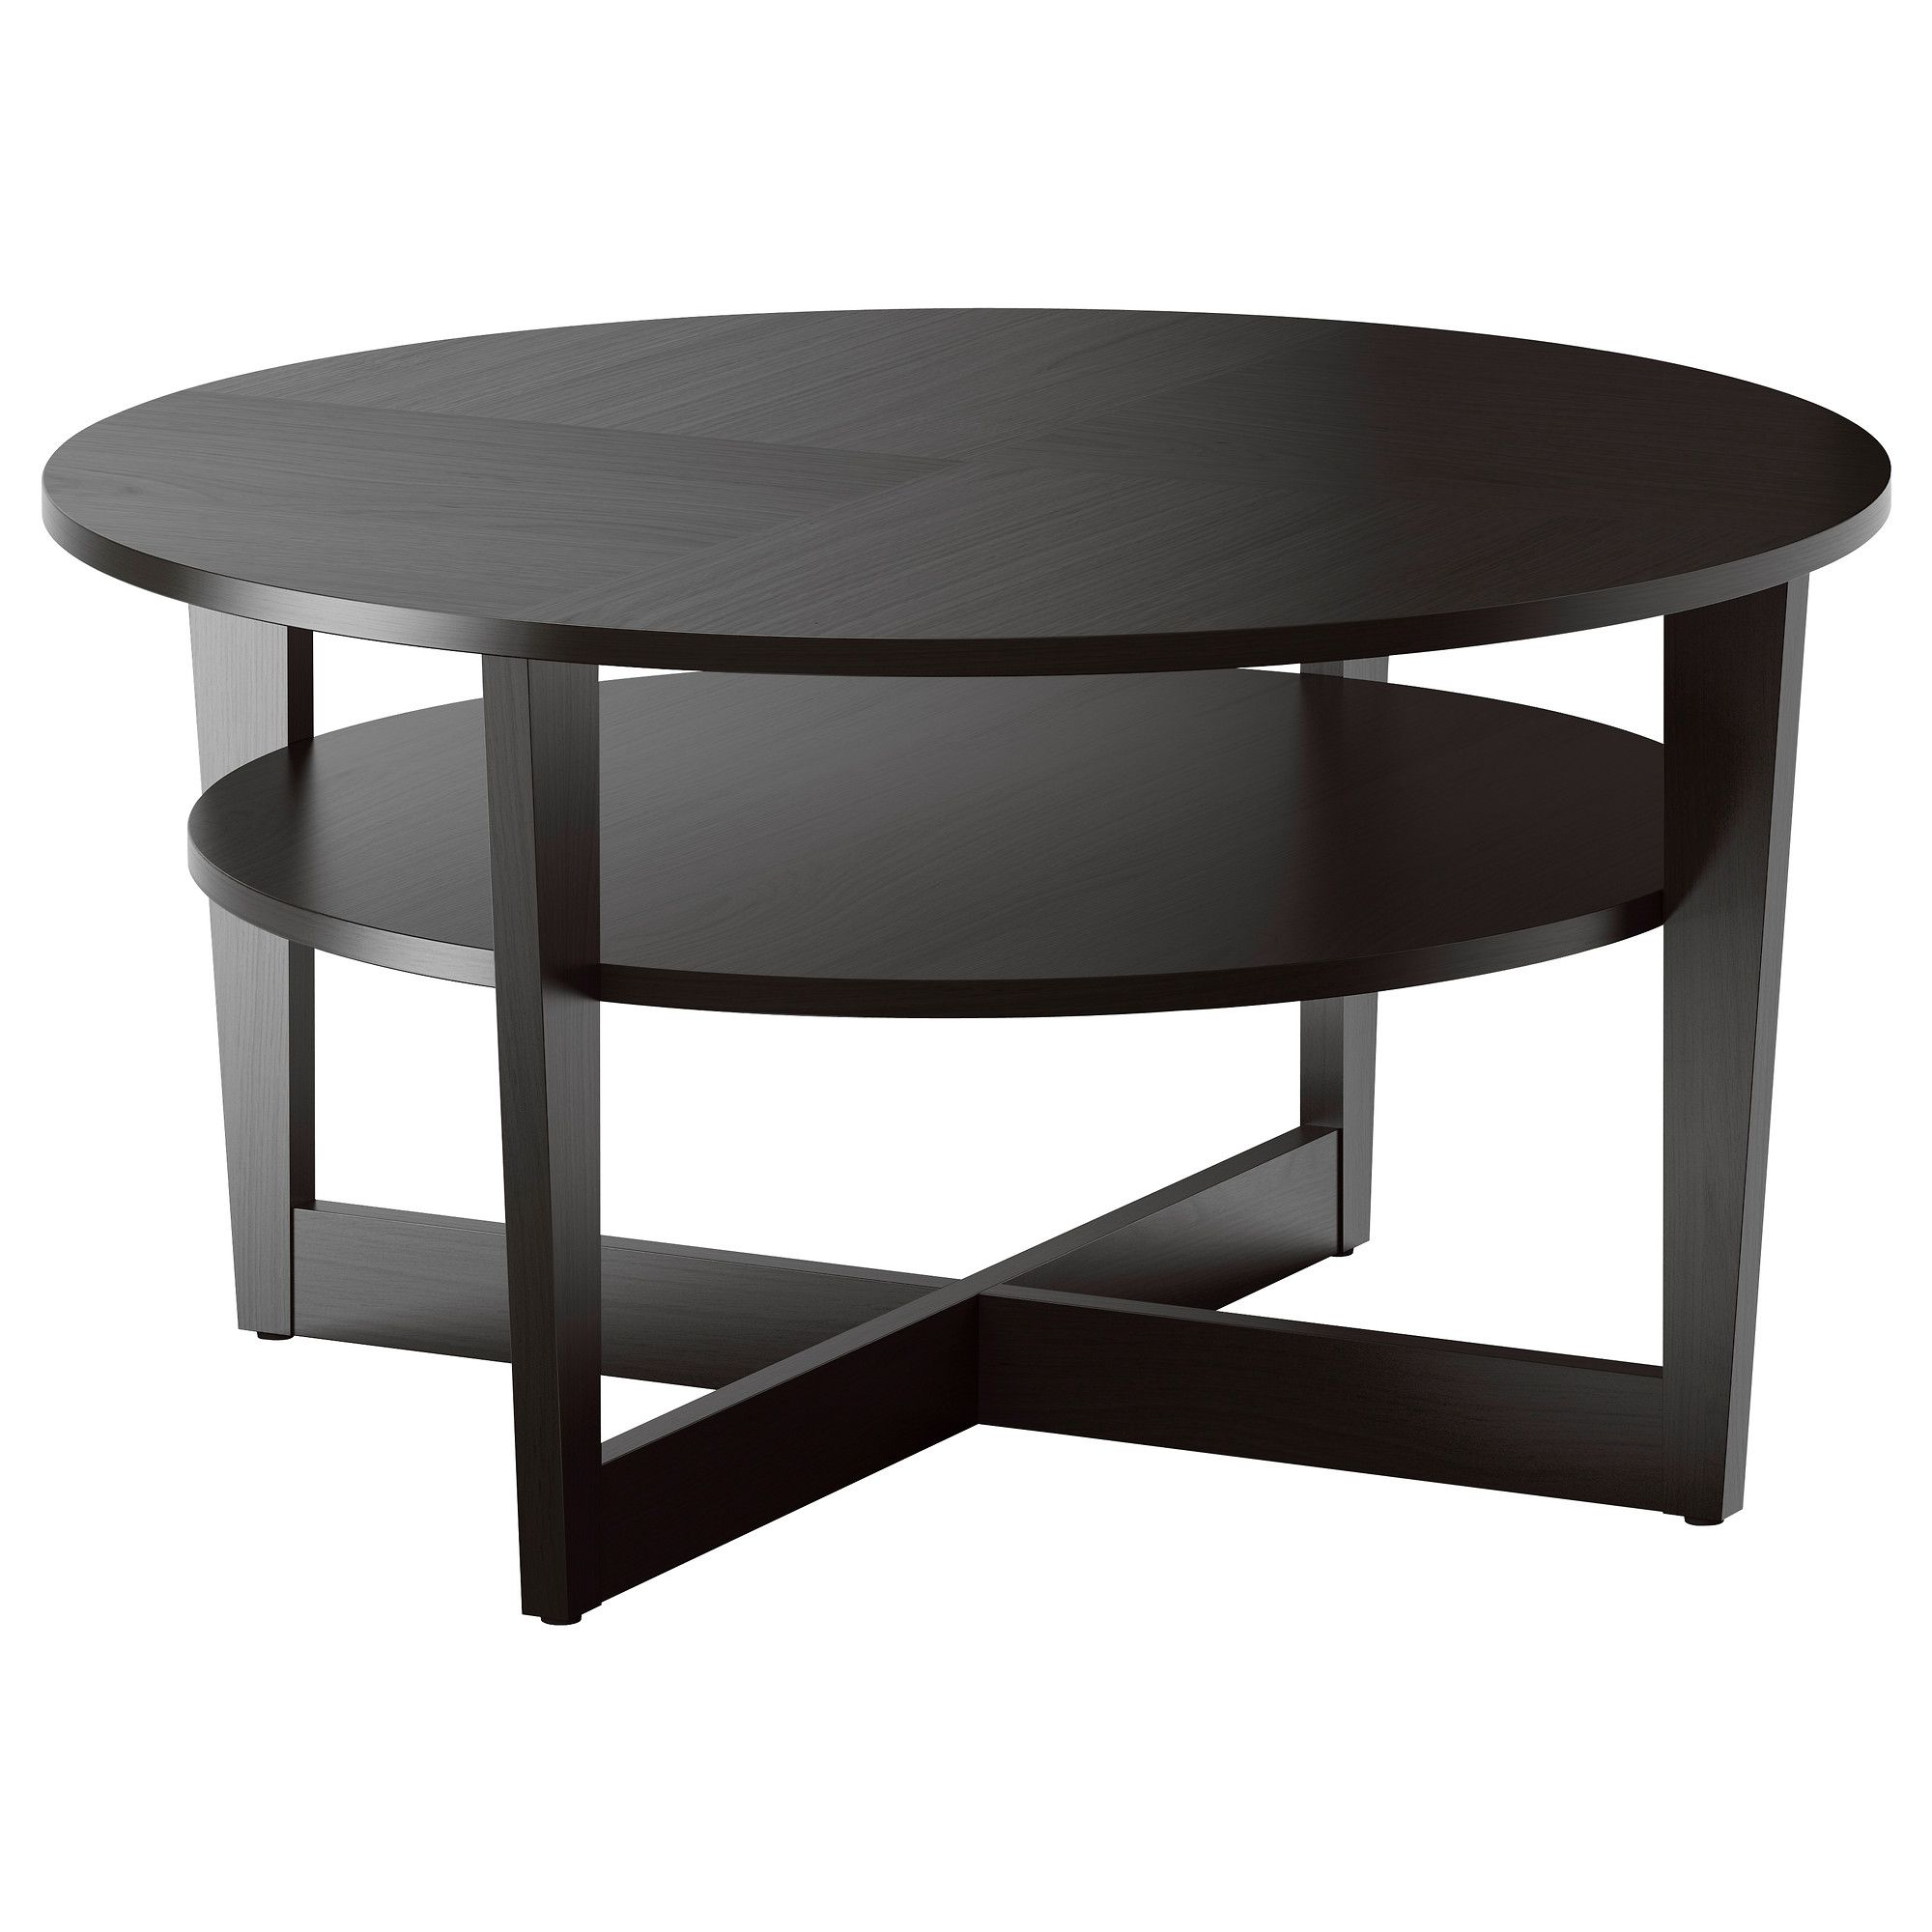 Ikea Table Basse Noir Vejmon Table Basse Brun Noir Ikea Salon Table Living Room